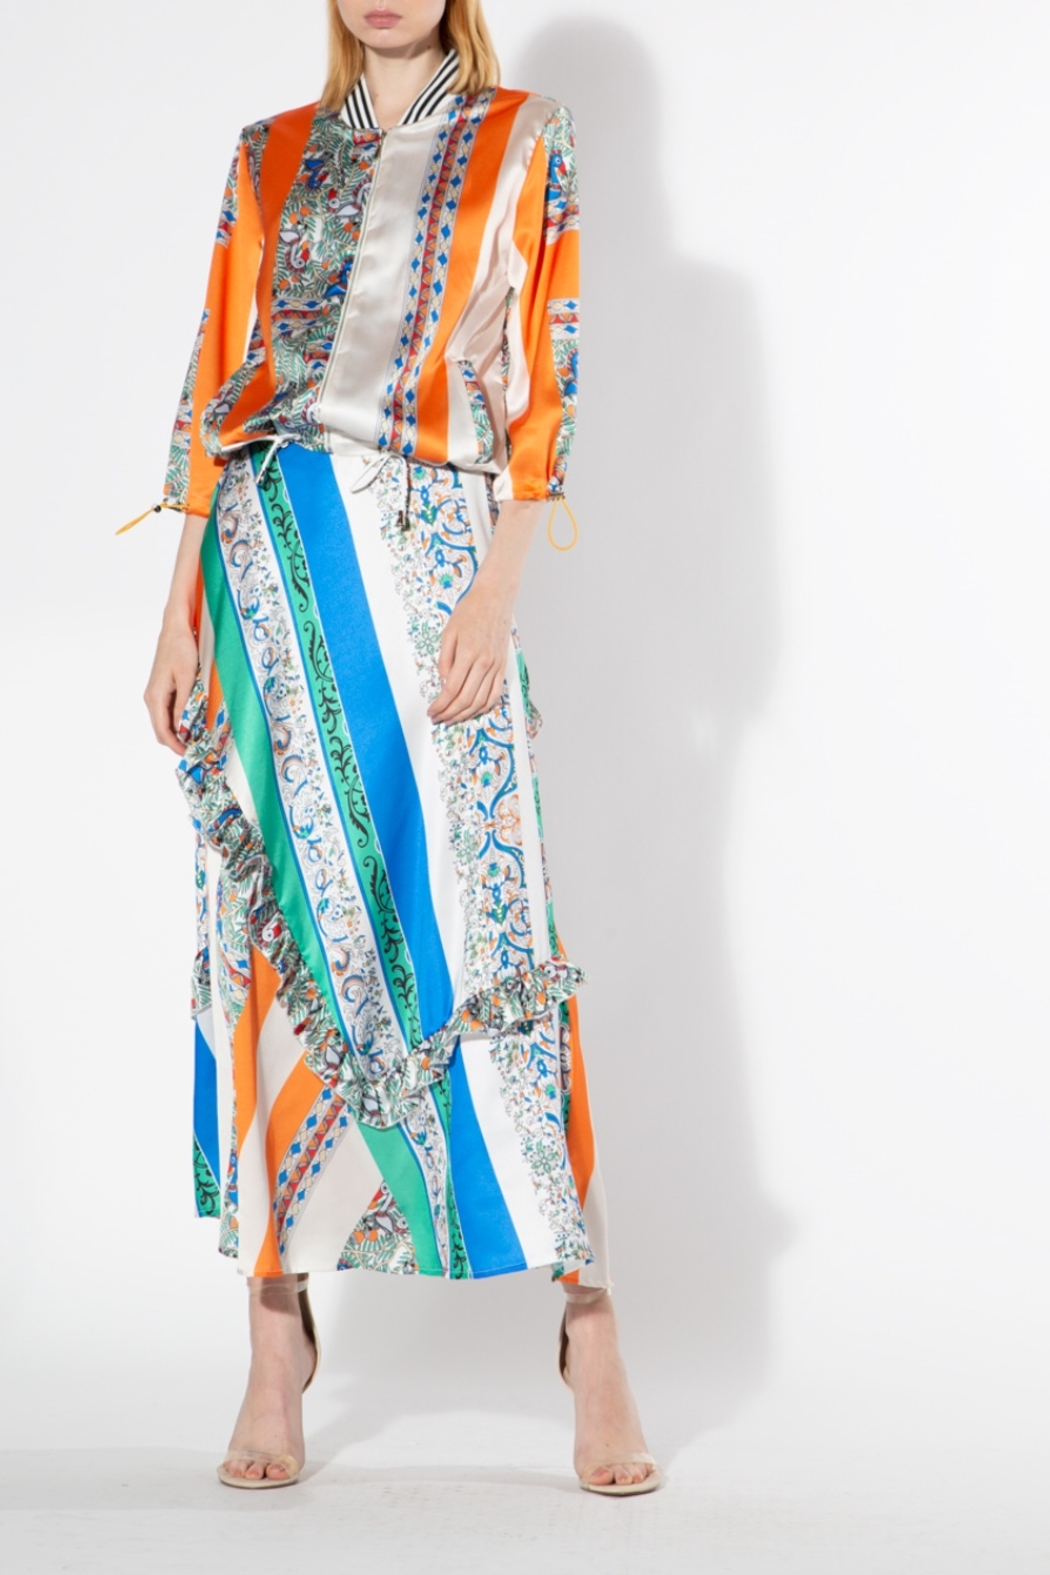 BEULAH STYLE Multicolored Silk Skirt - Main Image